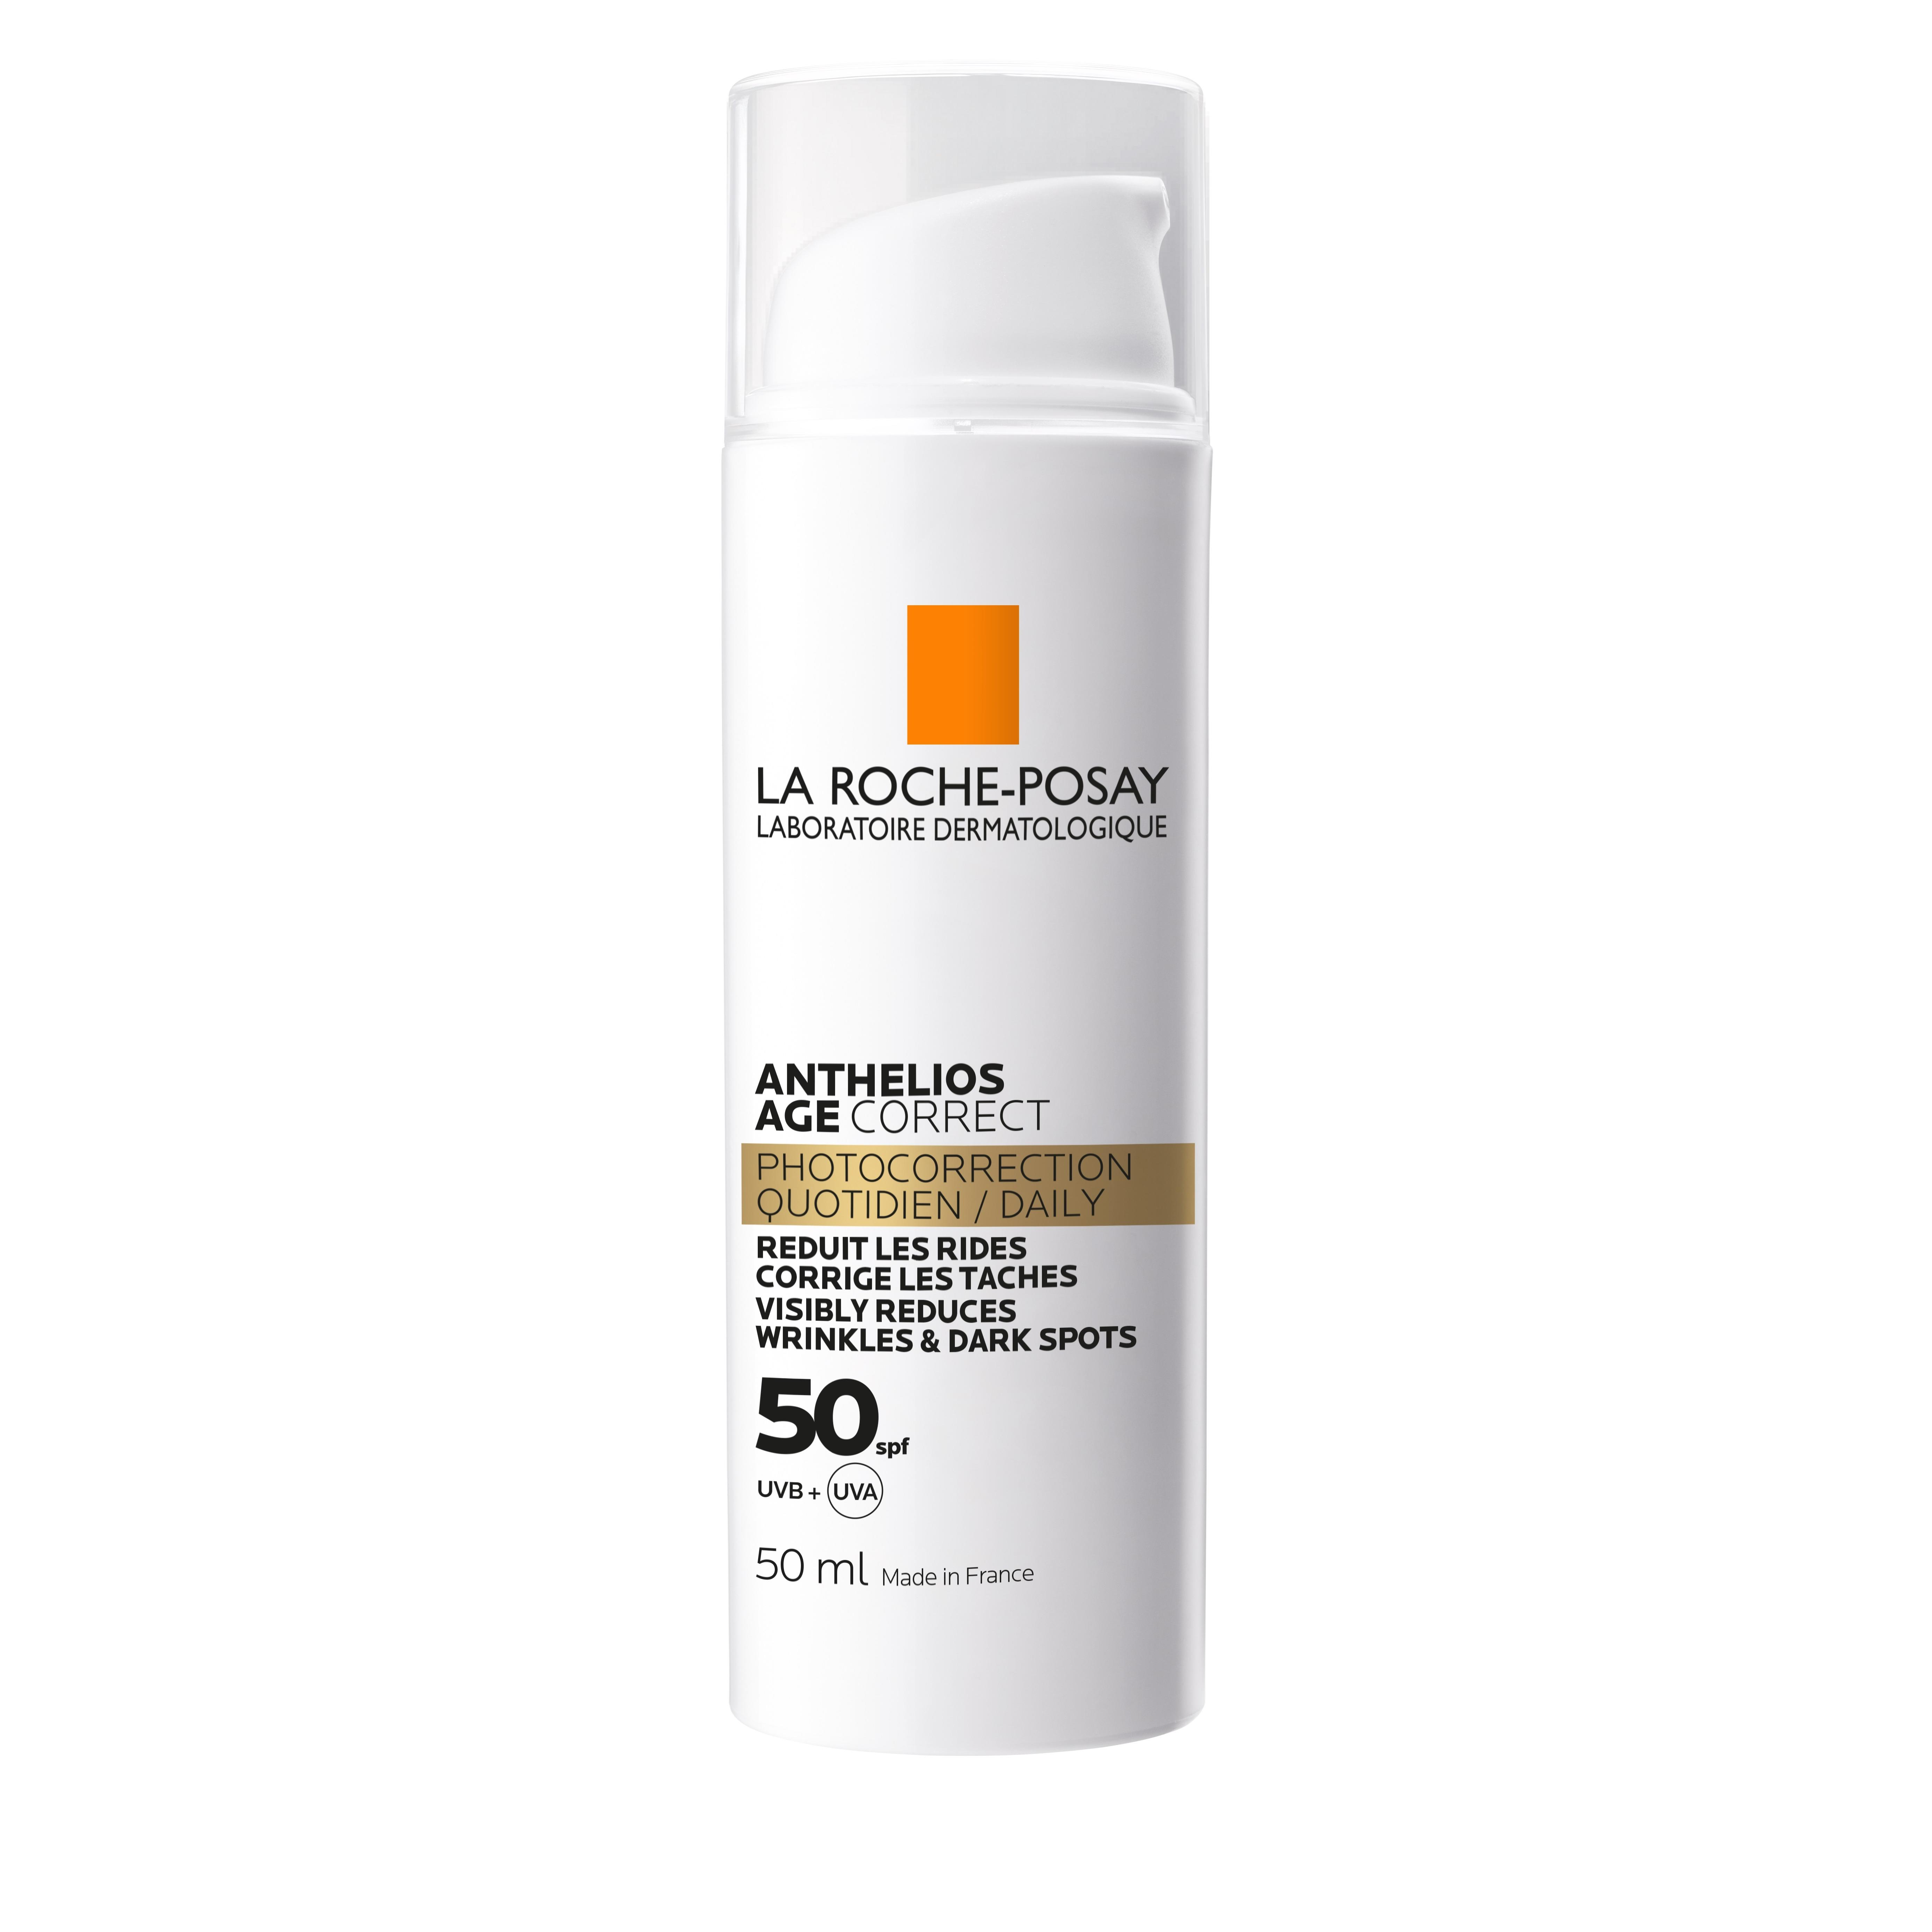 Image of La Roche Posay Anthelios Age-correct SPF50+